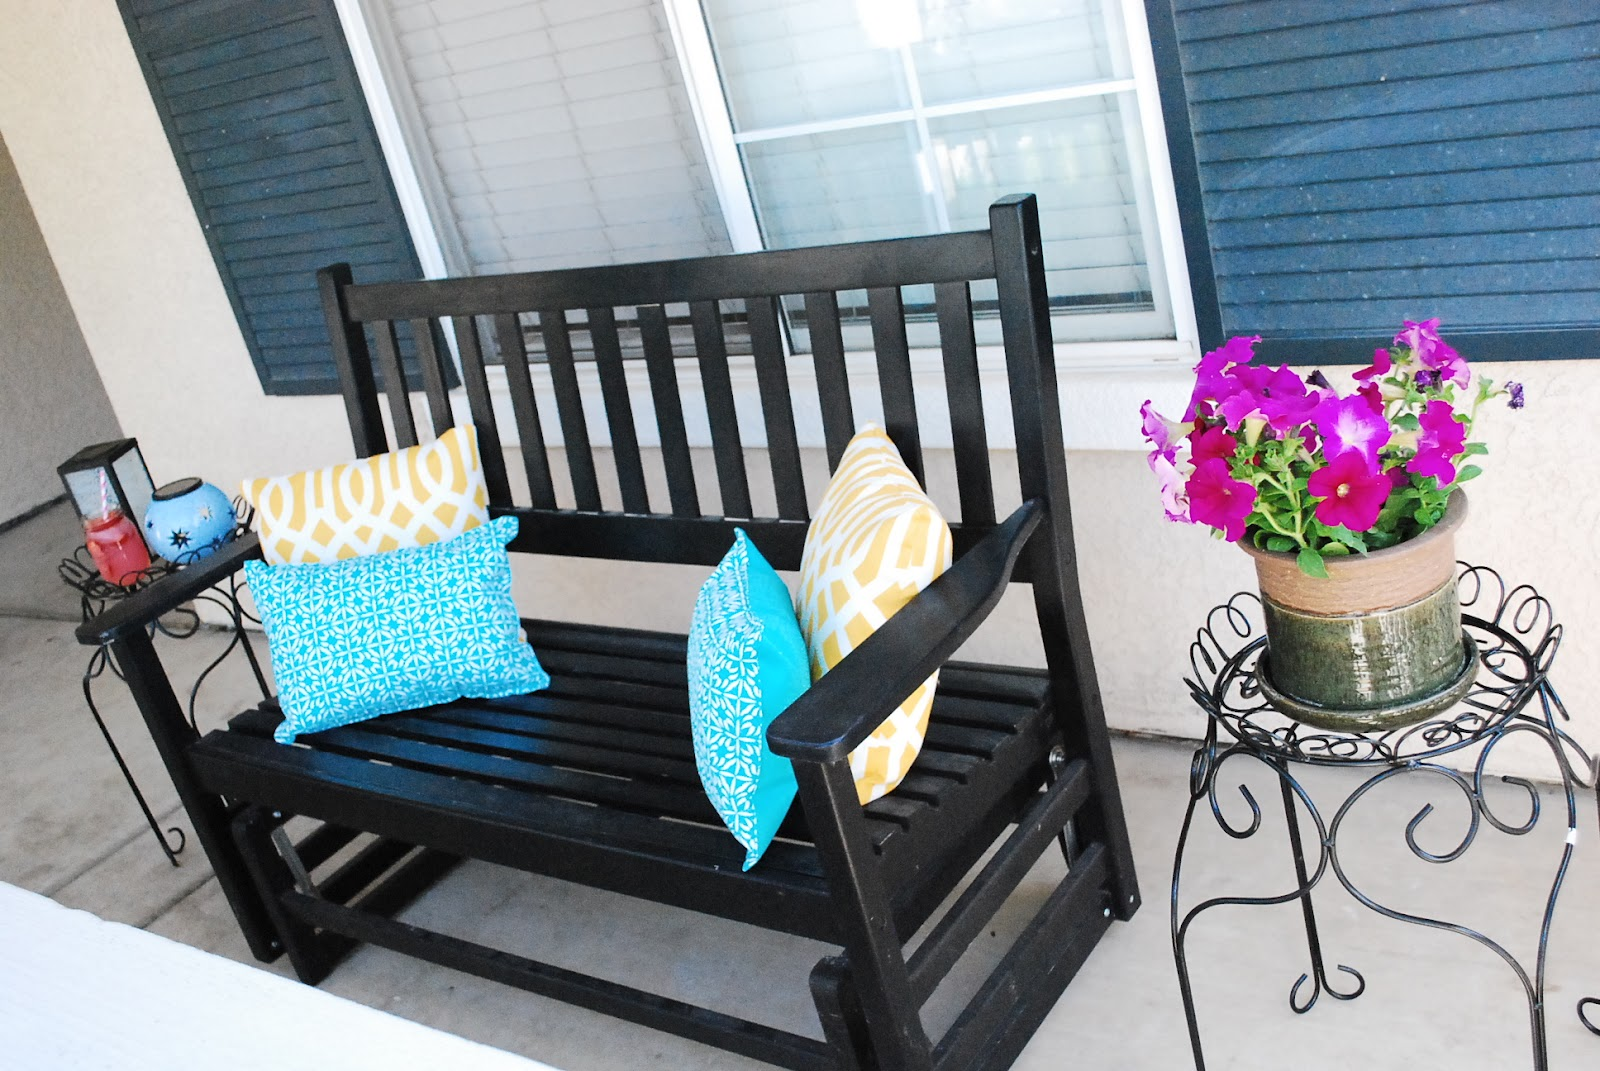 Patio Makeover On a Budget on Patio Makeovers On A Budget id=79761